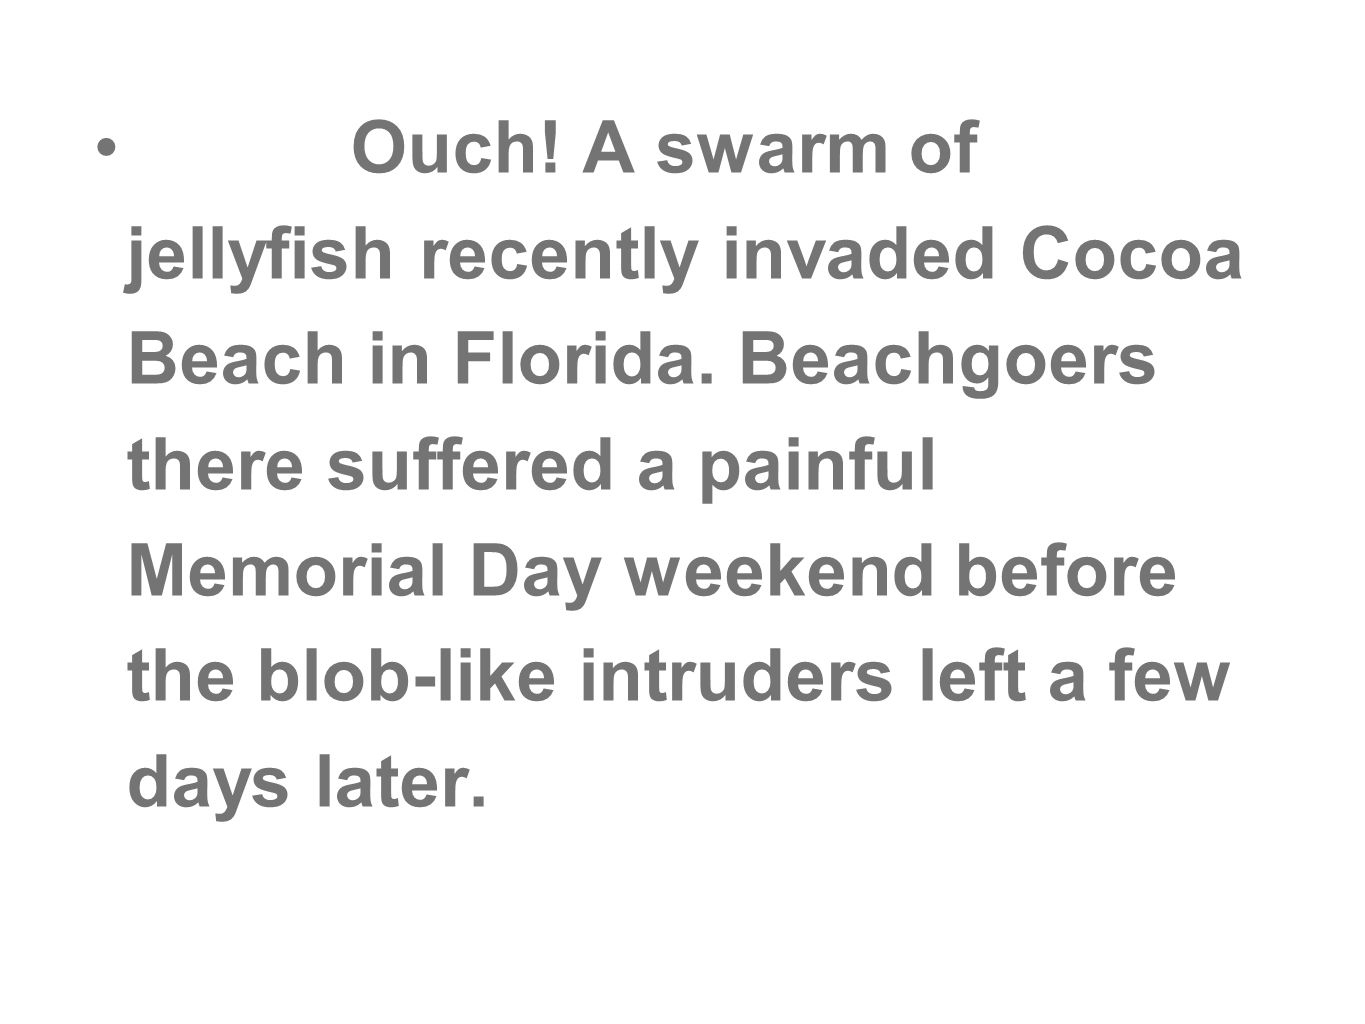 Ouch. A swarm of jellyfish recently invaded Cocoa Beach in Florida